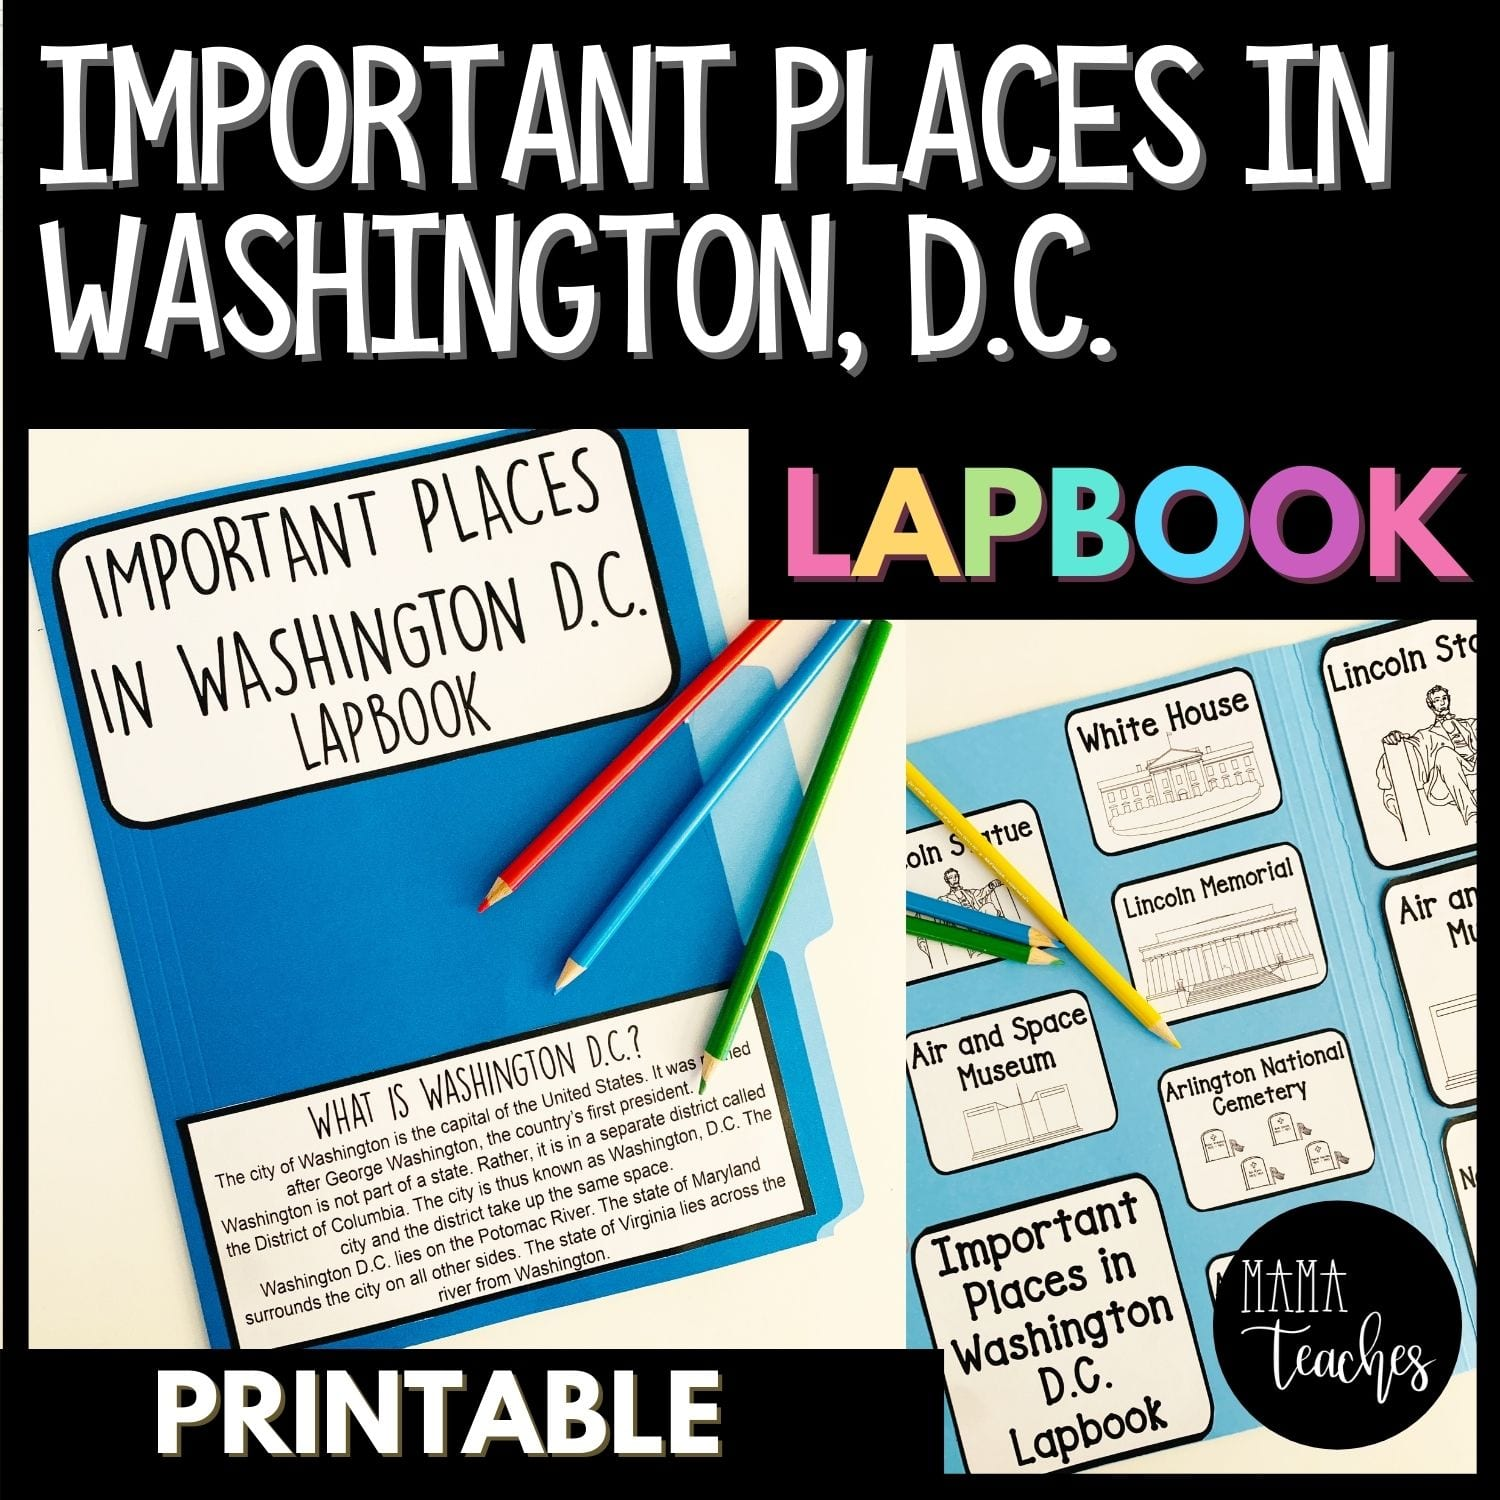 Important Places in Washington, D.C. - a Lapbook to Teach Children About Important Locations in the U.S. Capital